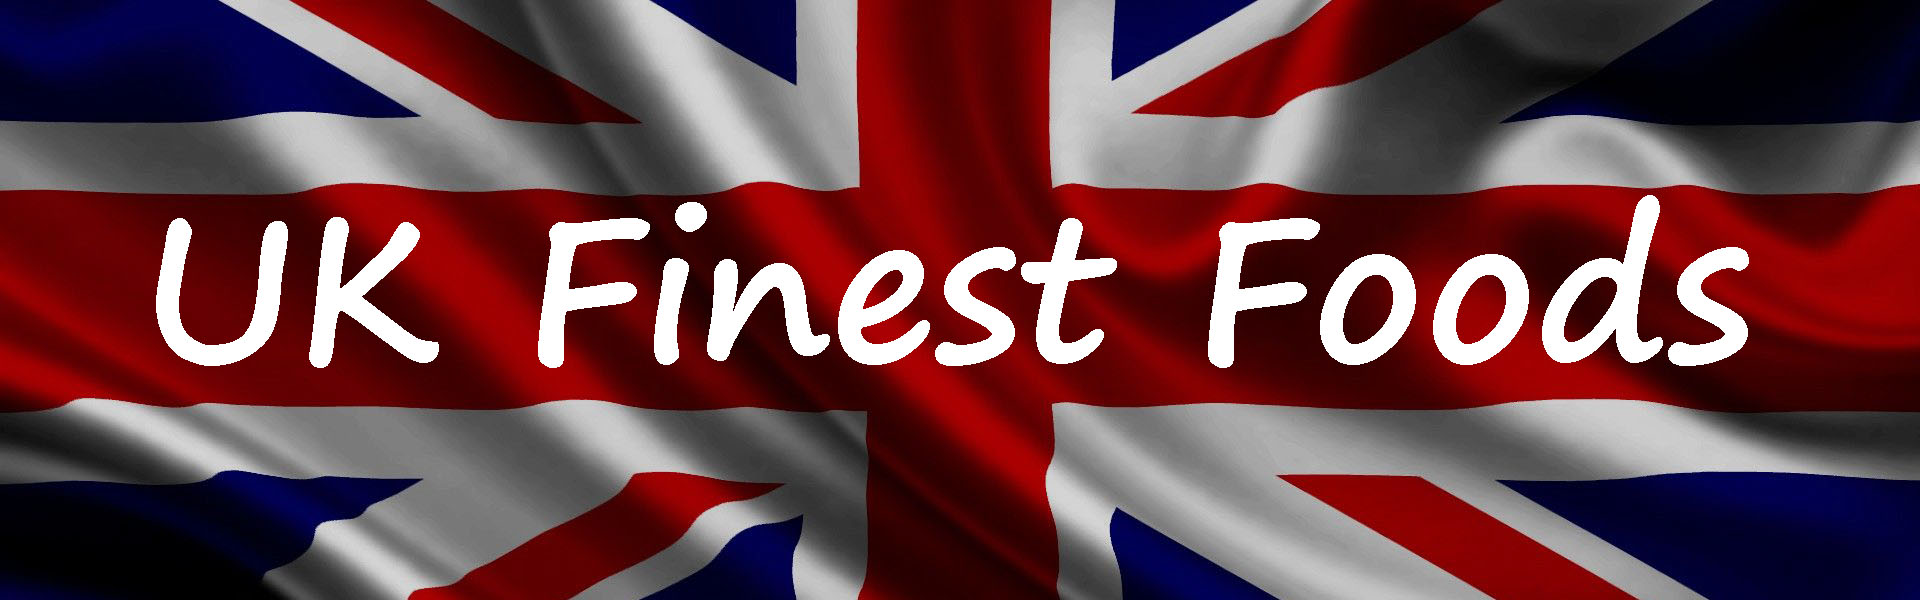 web-readyuk-finest-foods-2